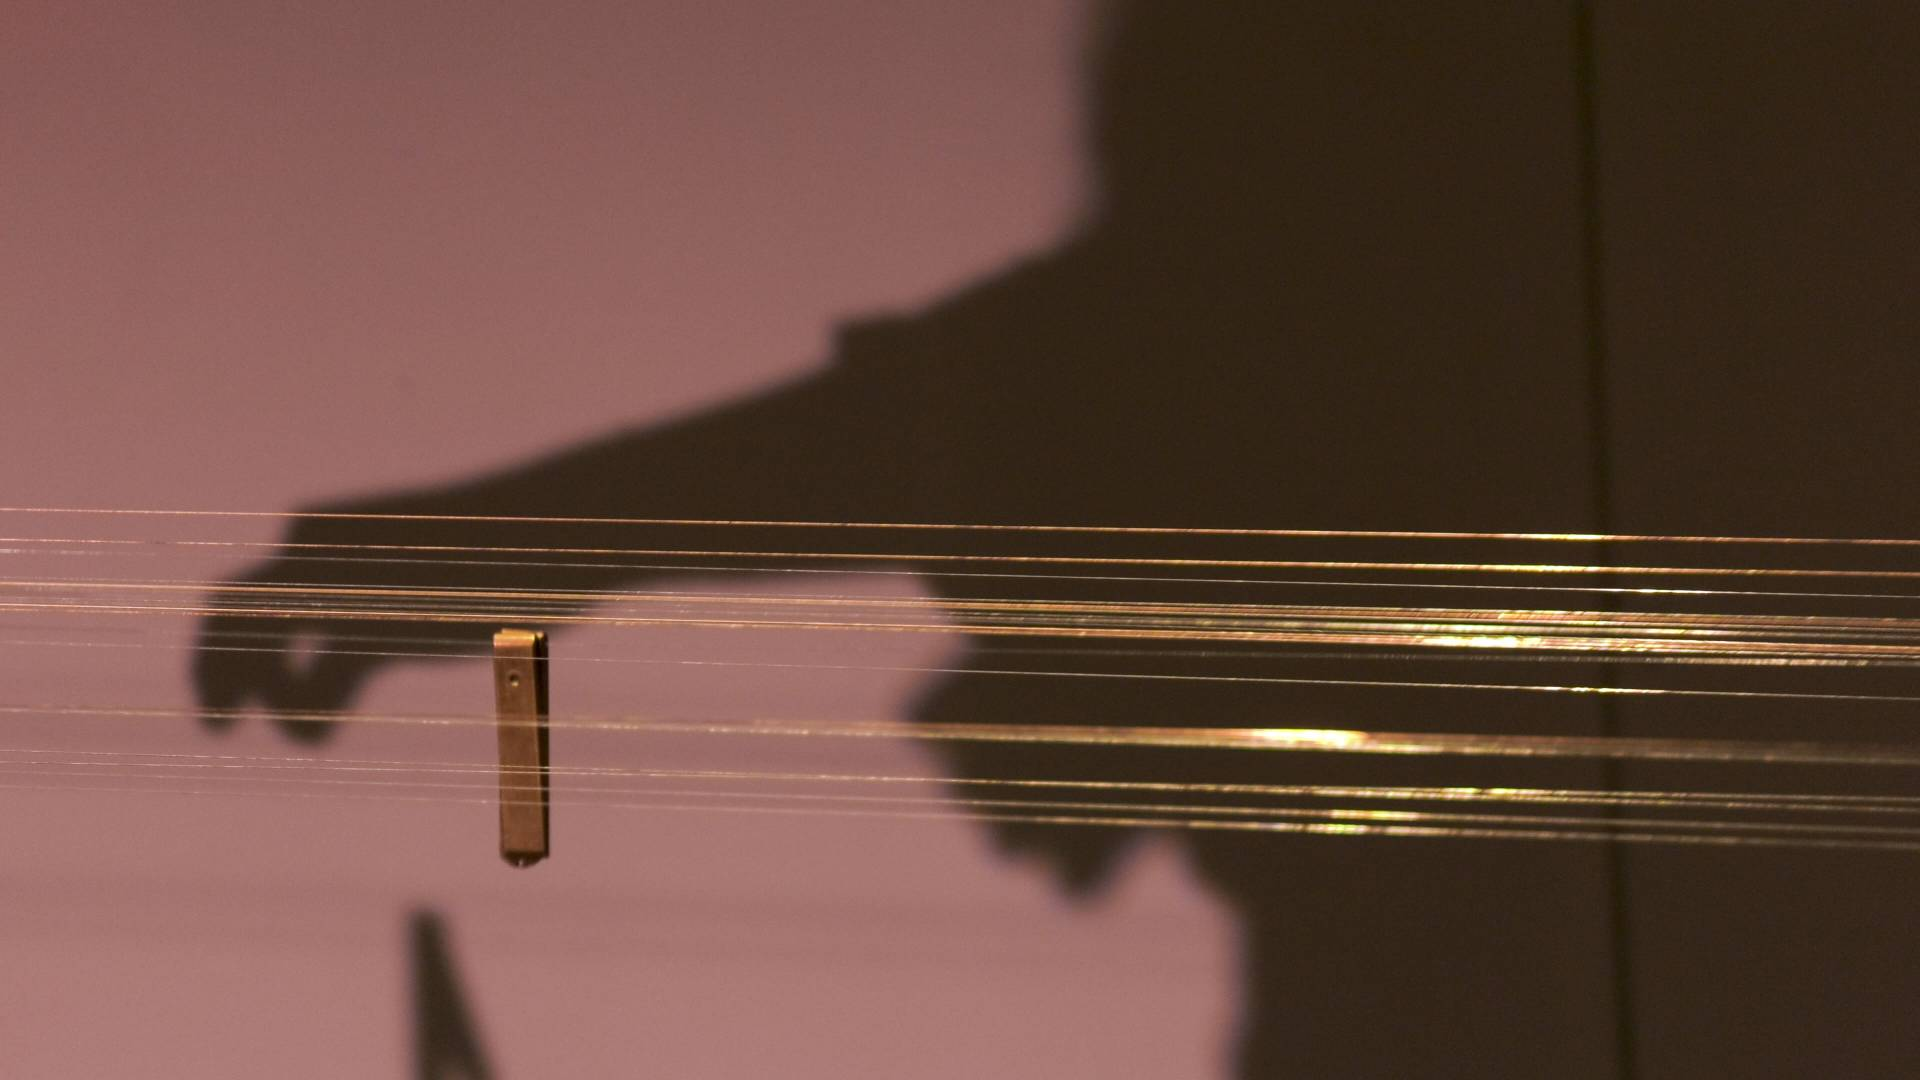 Rows of musical strings with shadow of hand plucking strings in the background